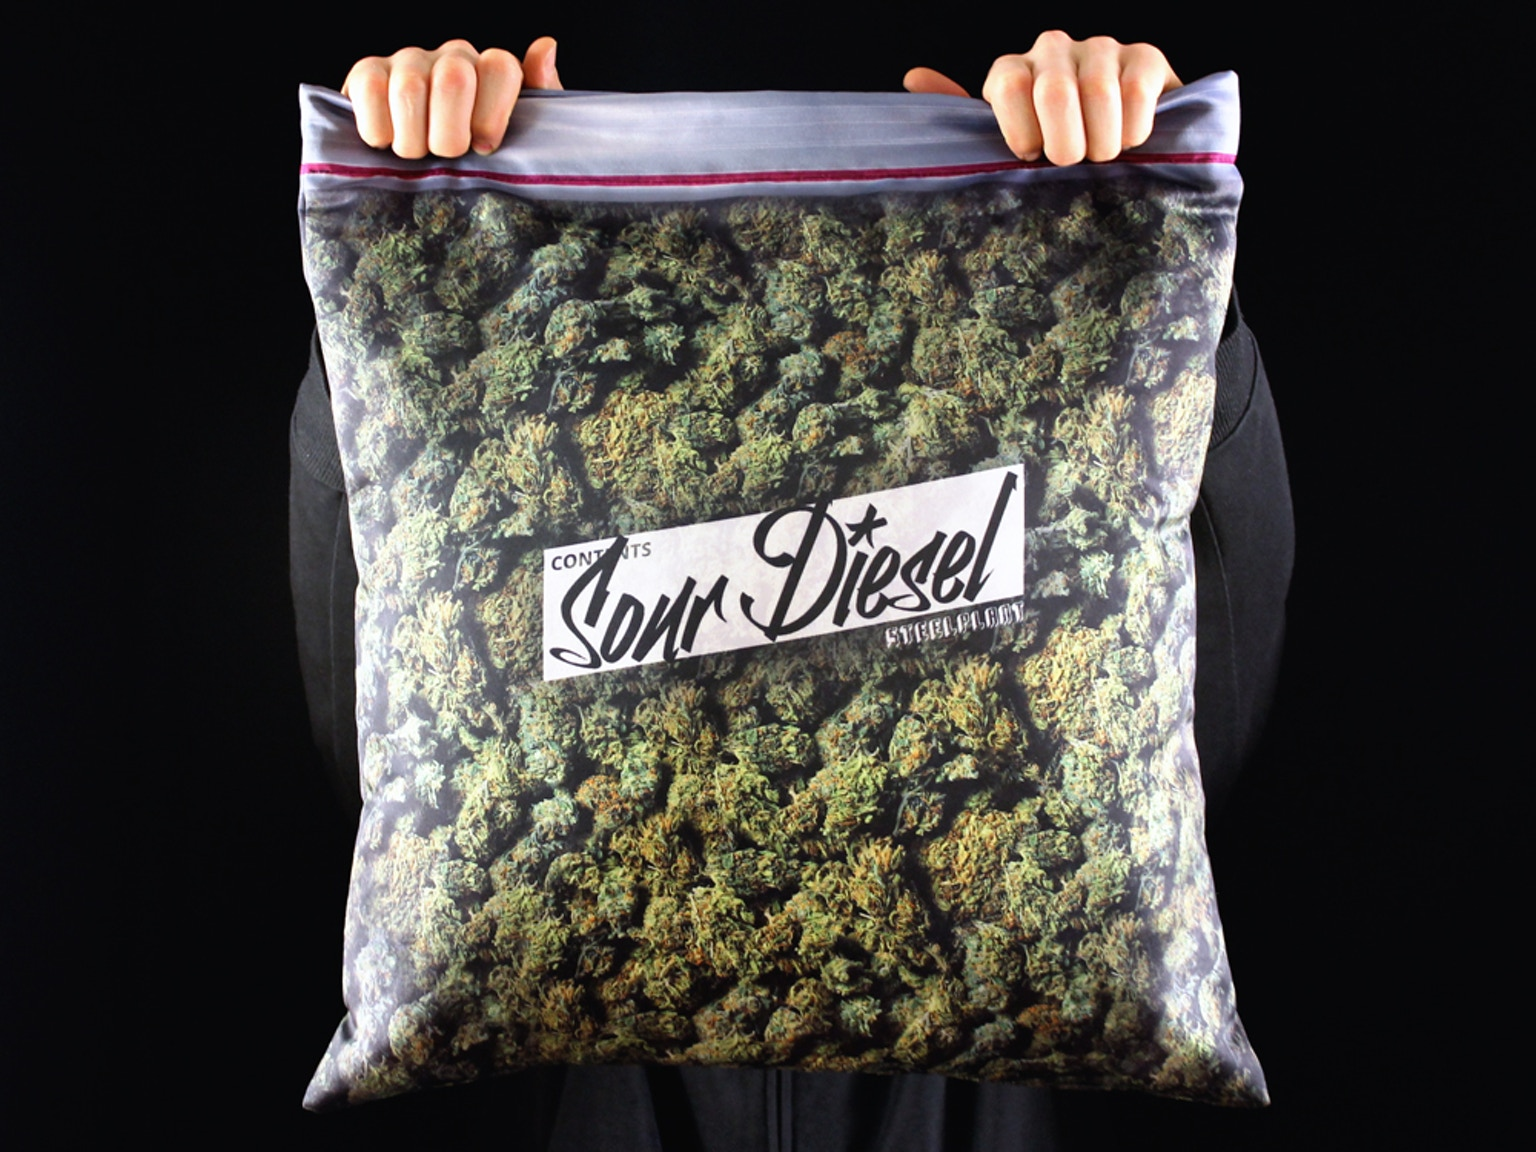 giant stash pillowcase plus size ziplock of cannabis by